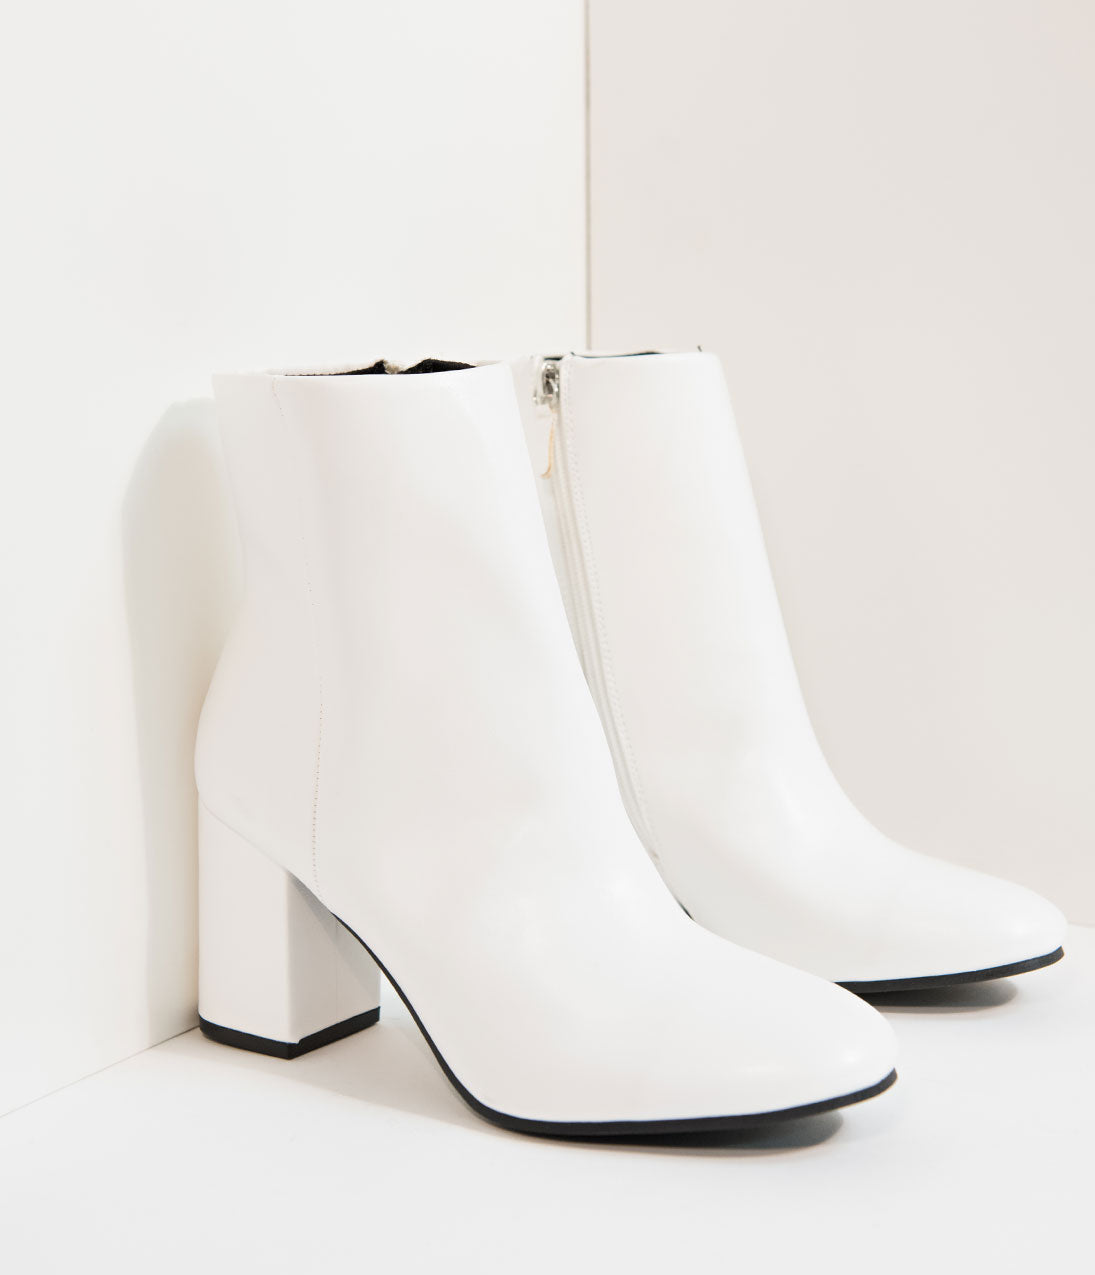 Vintage Boots, Retro Boots Retro Style White Leatherette Mod Ankle Boots $56.00 AT vintagedancer.com